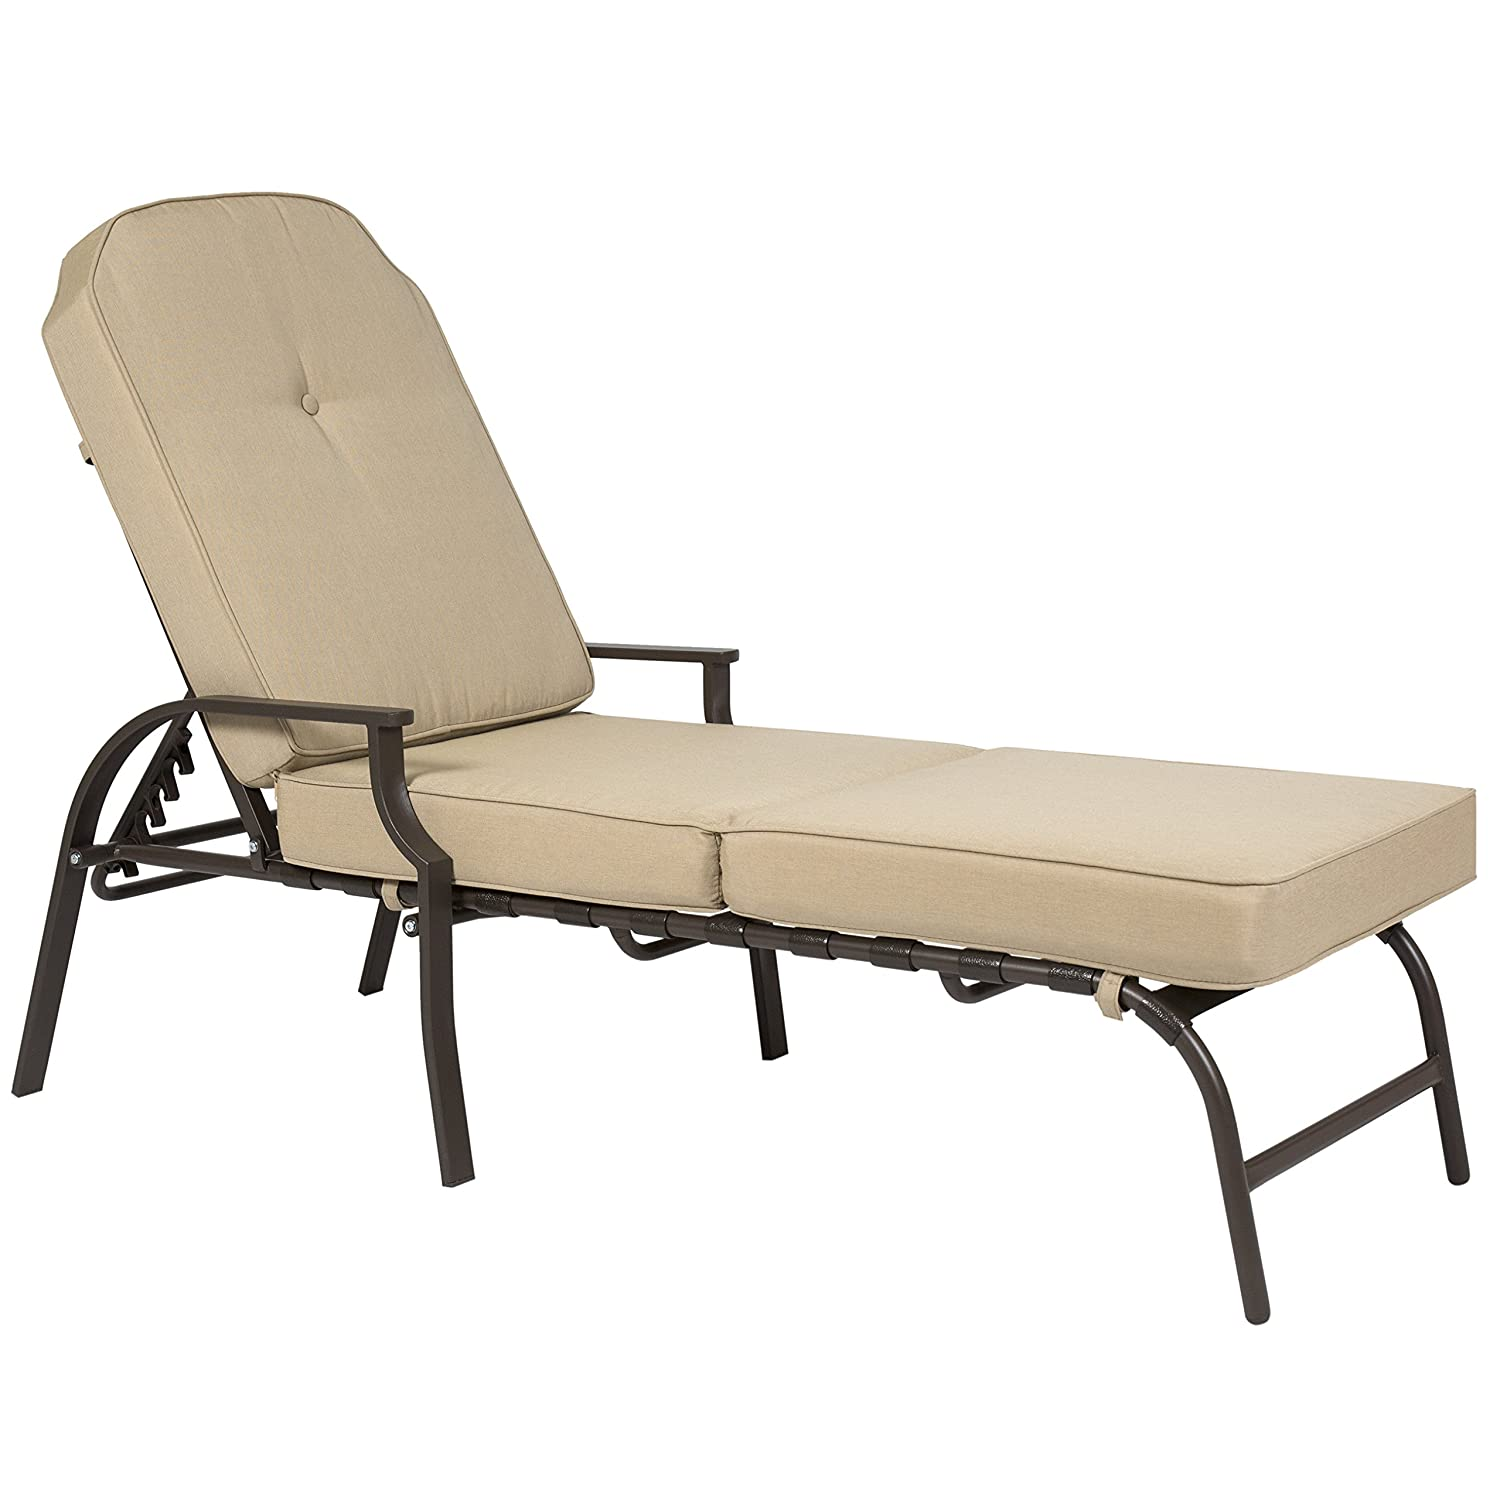 Amazon.com : Best Choice Products Outdoor Chaise Lounge Chair W/ Cushion  Pool Patio Furniture Beige : Garden U0026 Outdoor